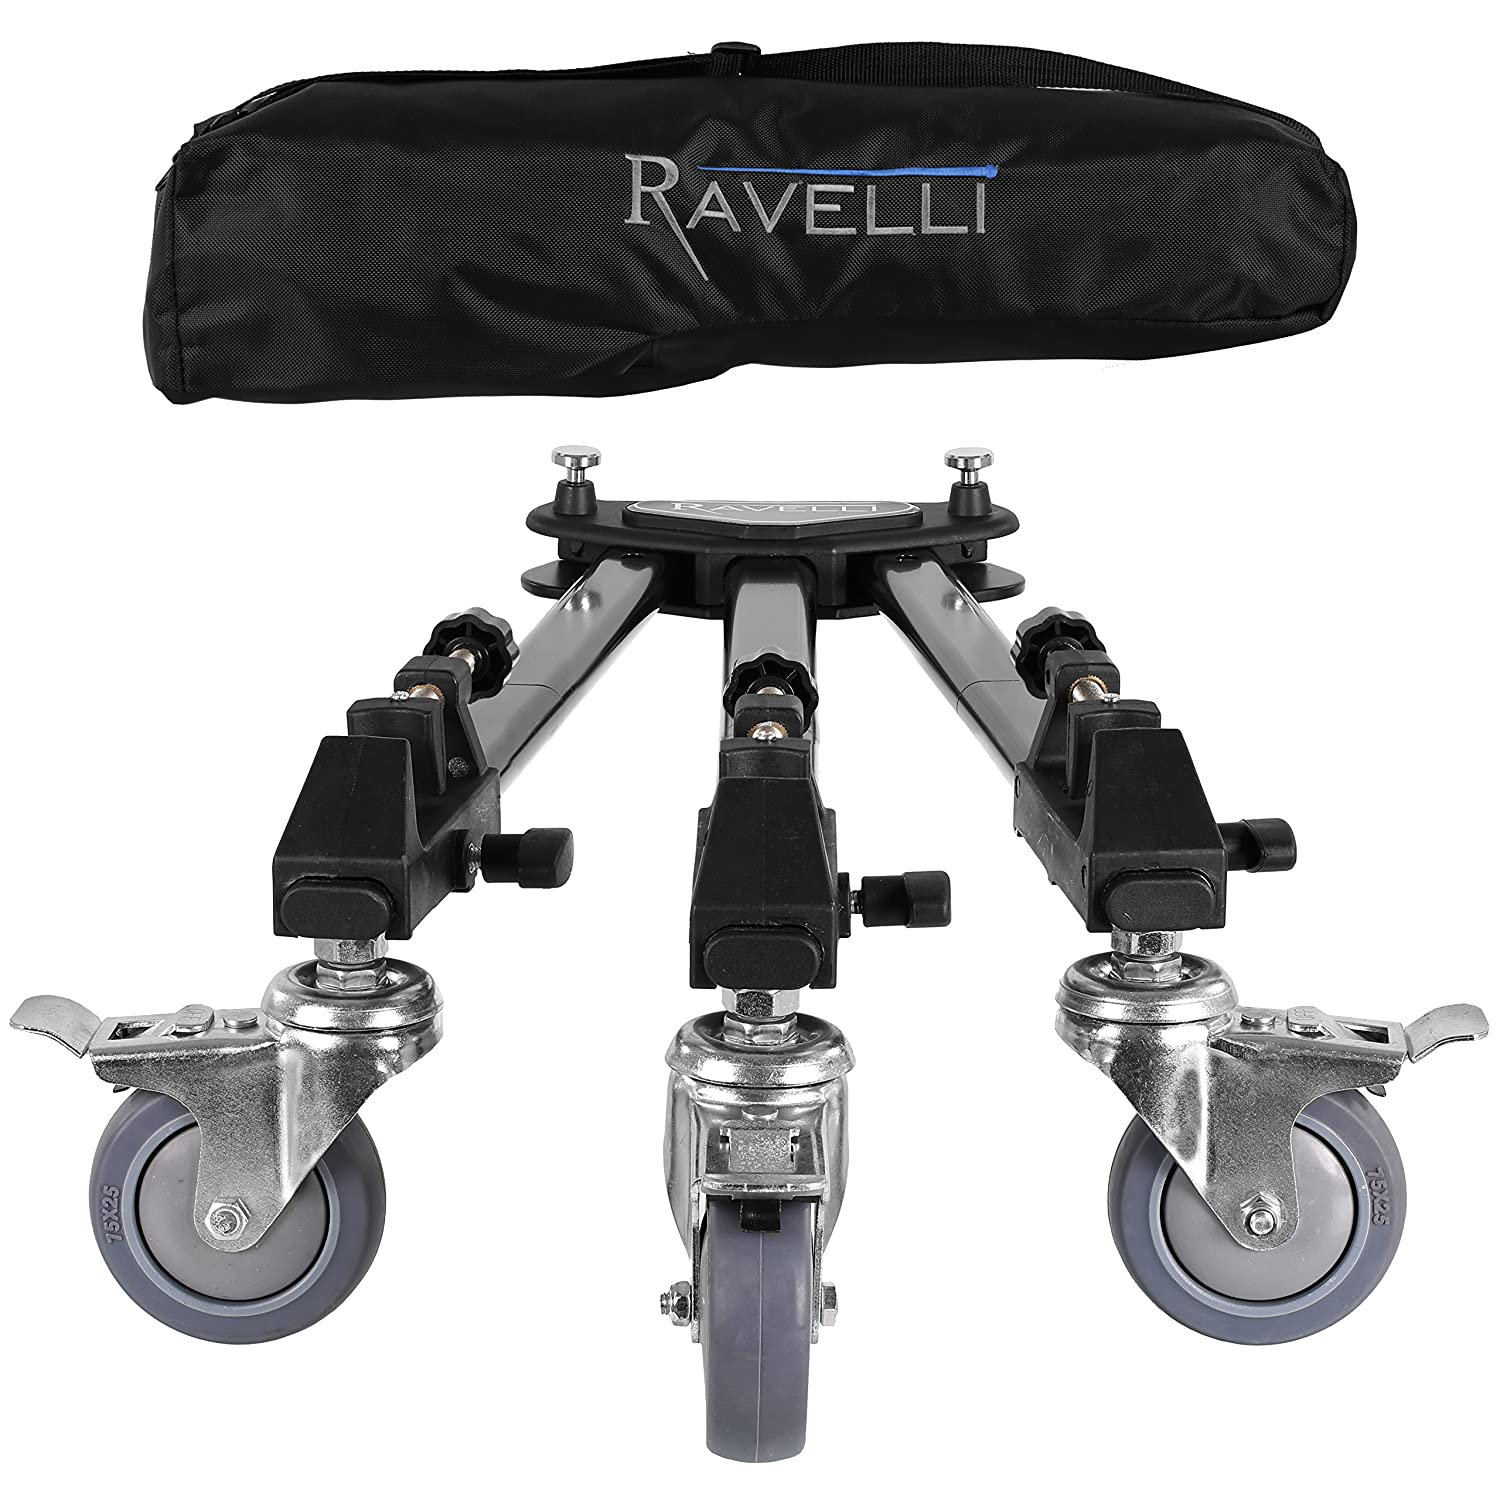 Amazon.com : Ravelli ATD Professional Tripod Dolly for Camera ...